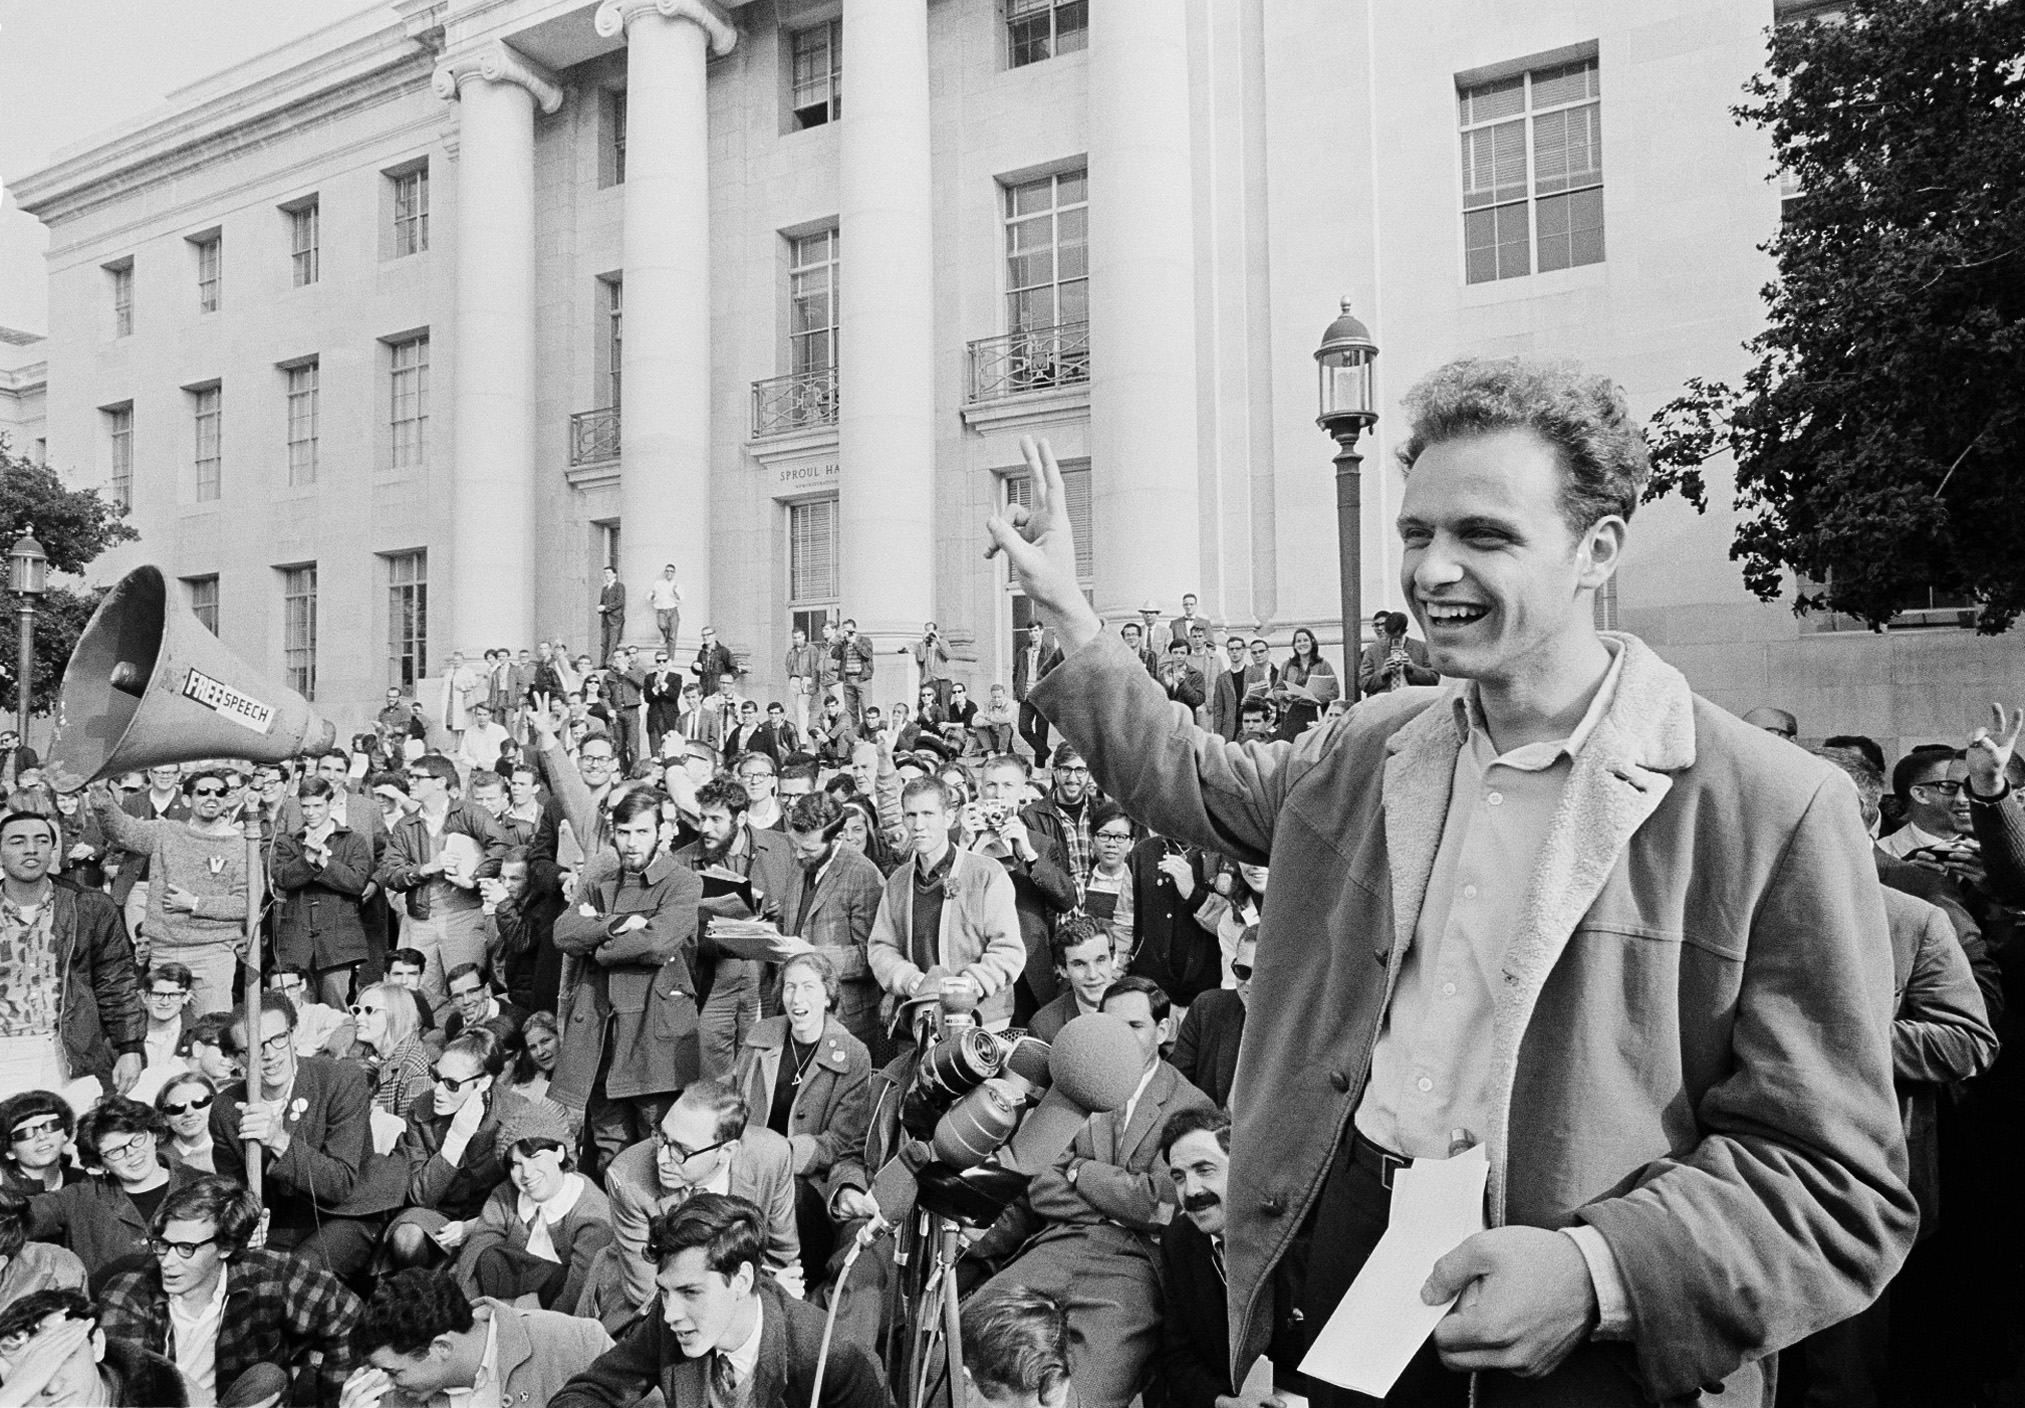 Mario Savio with his right hand raised in front of a crowd of students at UC Berkeley.